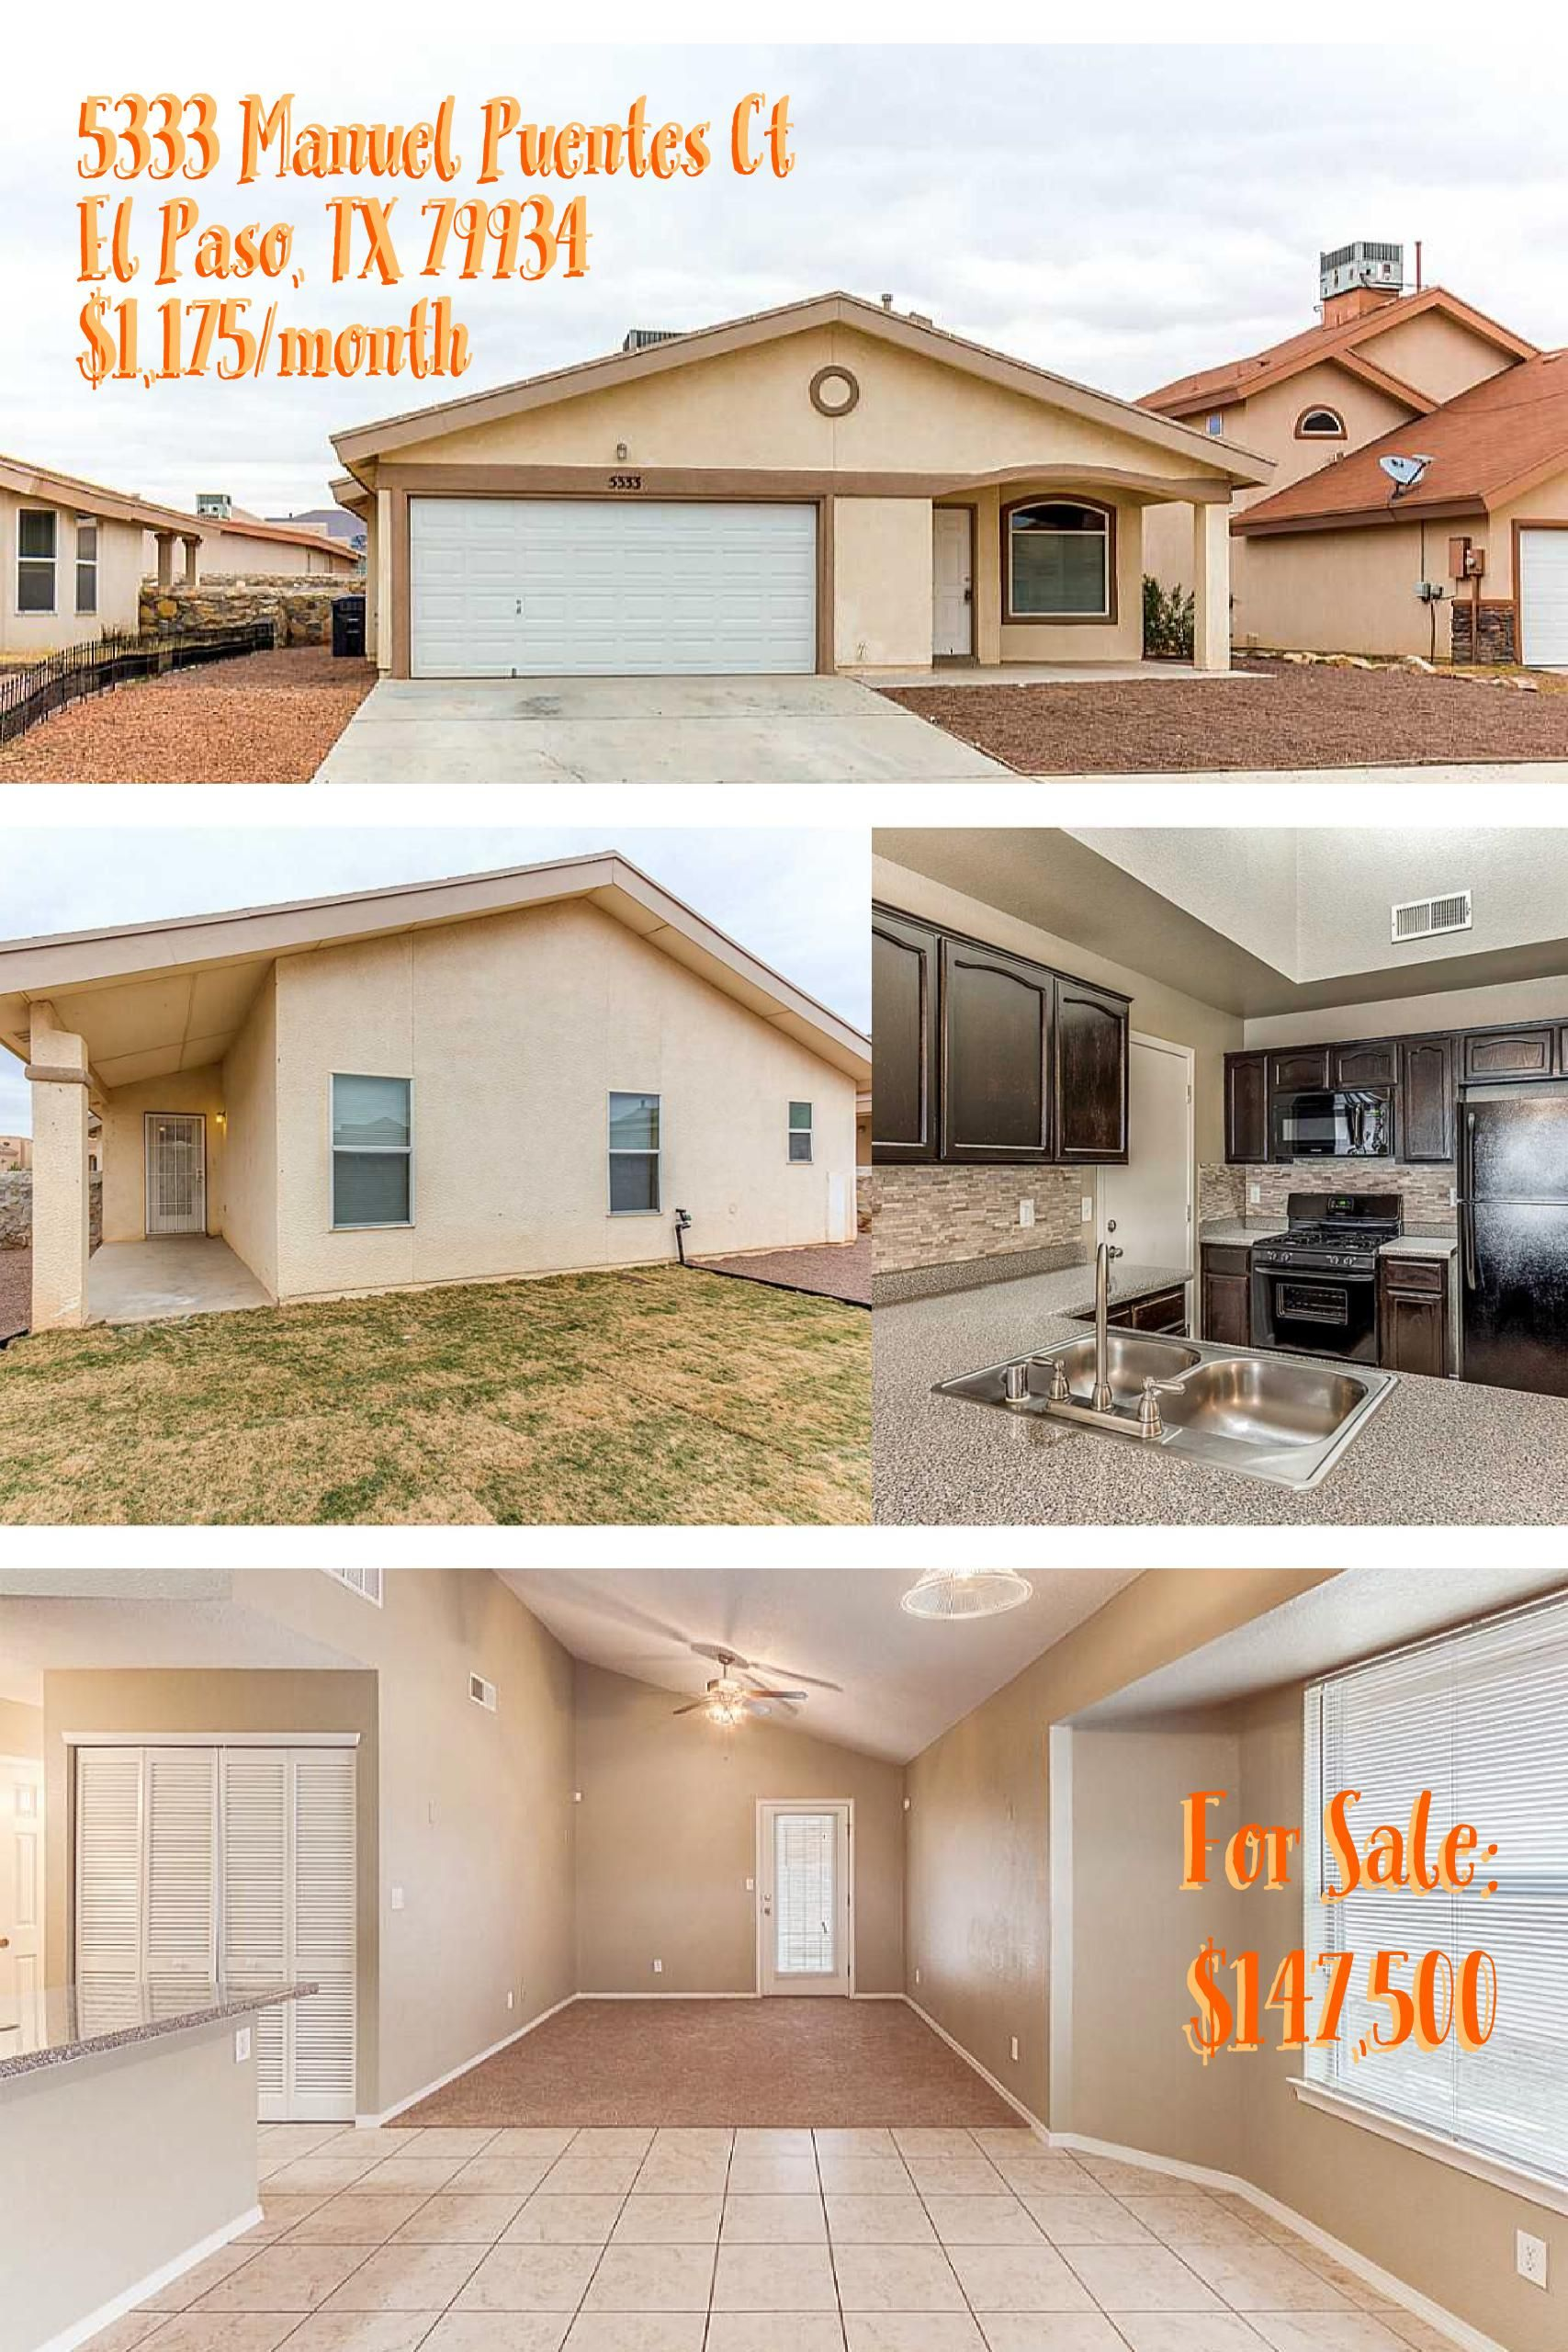 Home For Rent Lease W Option To Purchase And For Sale Stylish Northeast Home W Refrigerated Air Just Minutes Ft Fort Bliss Housing Renting A House Realty